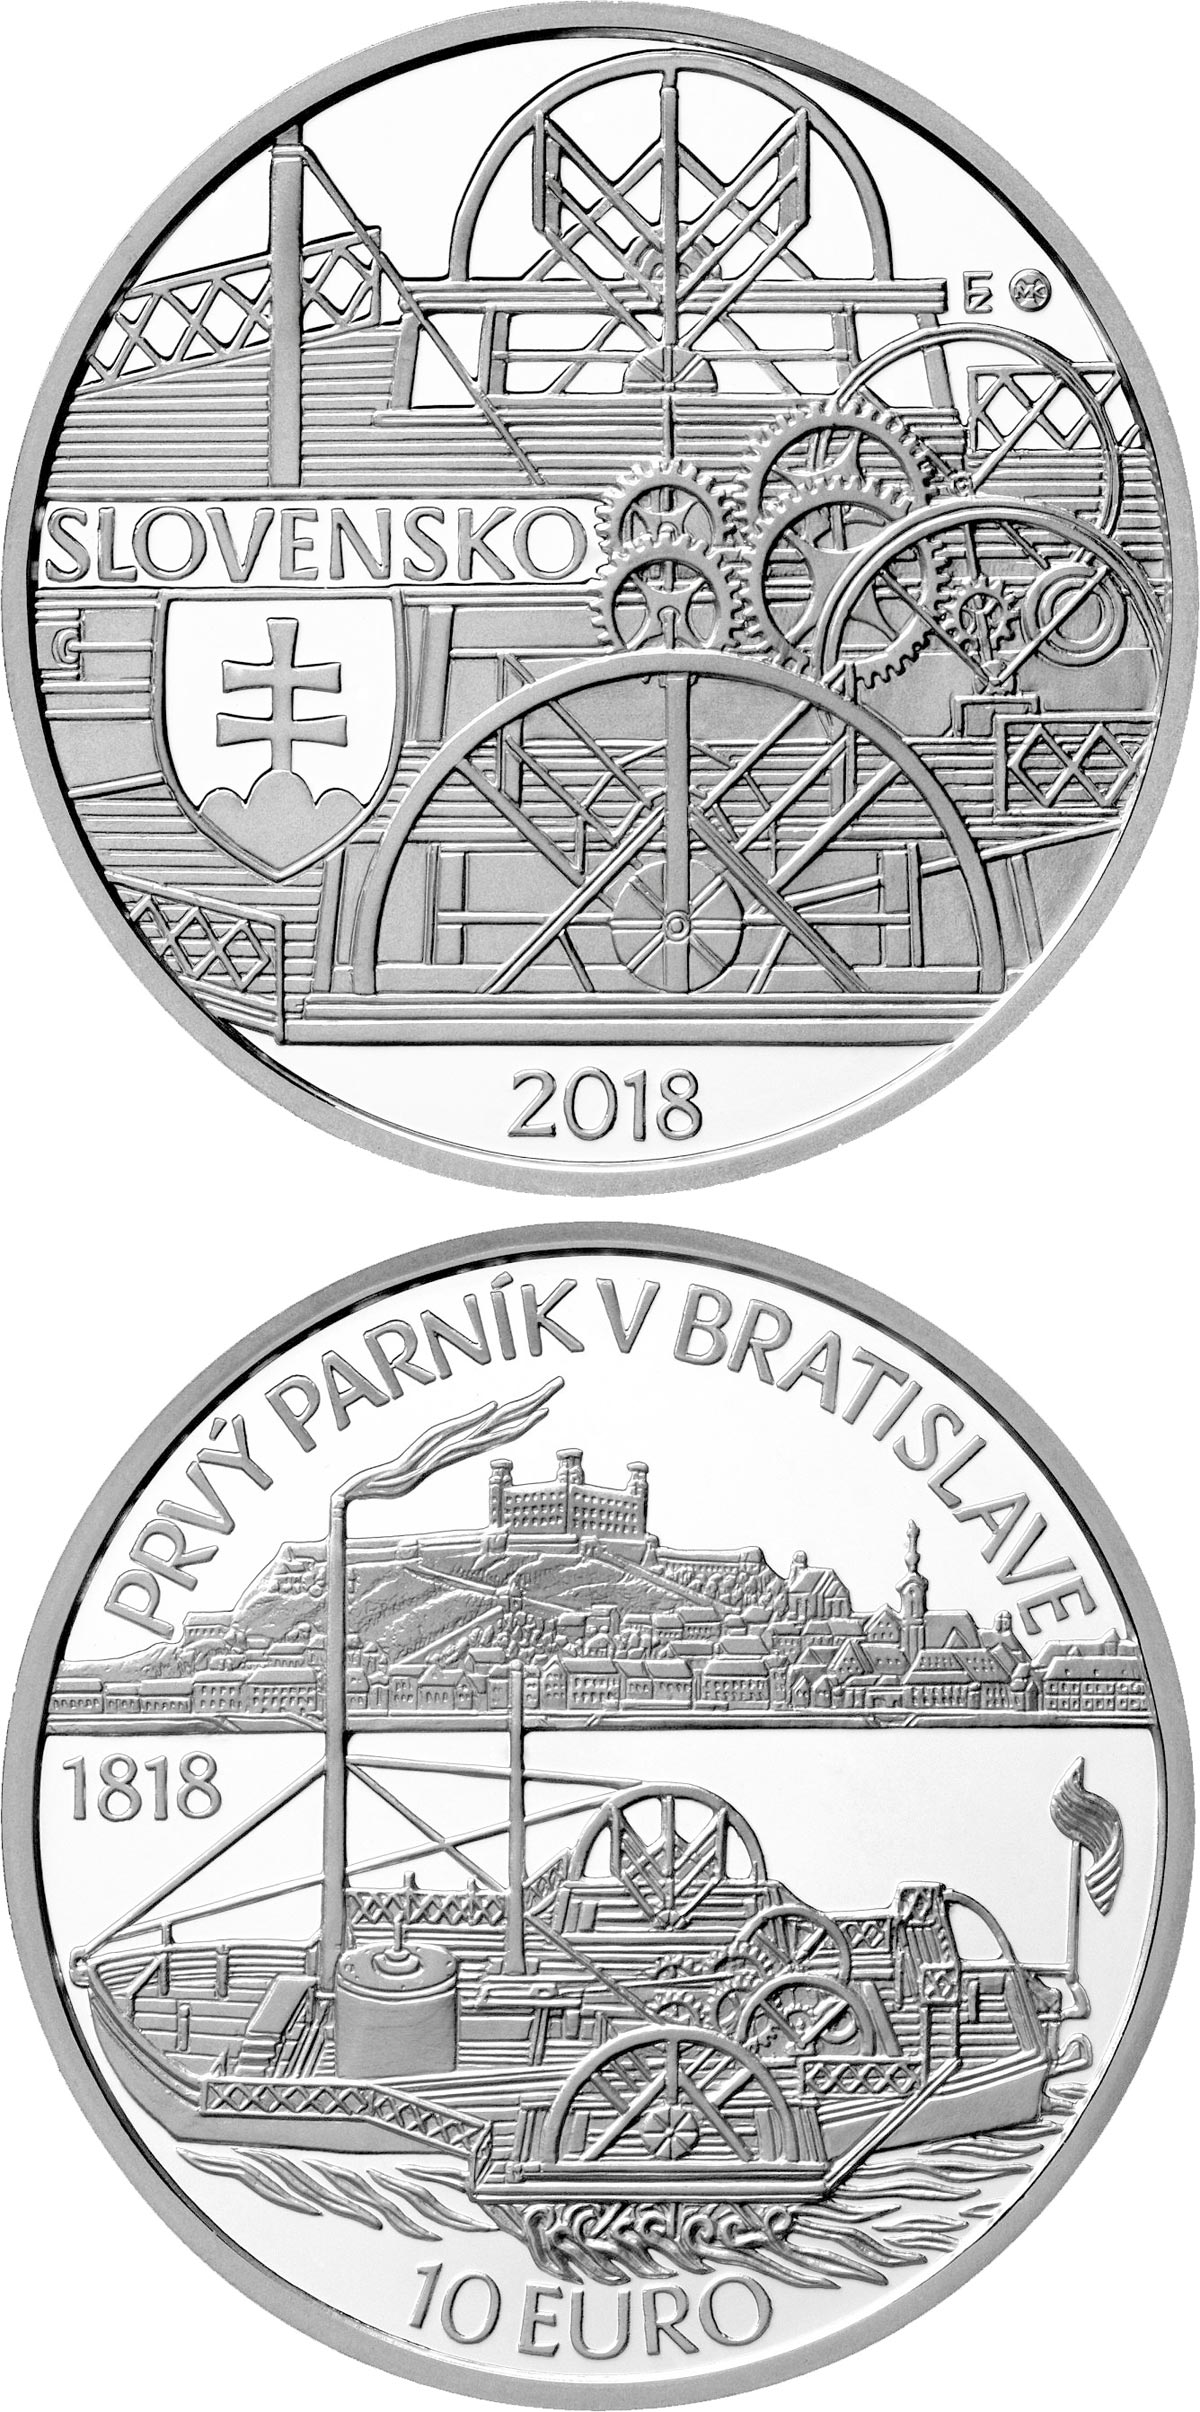 10 euro Anniversary of the first sailing of a steamer on the Danube River in Bratislava - 2018 - Series: Silver 10 euro coins - Slovakia